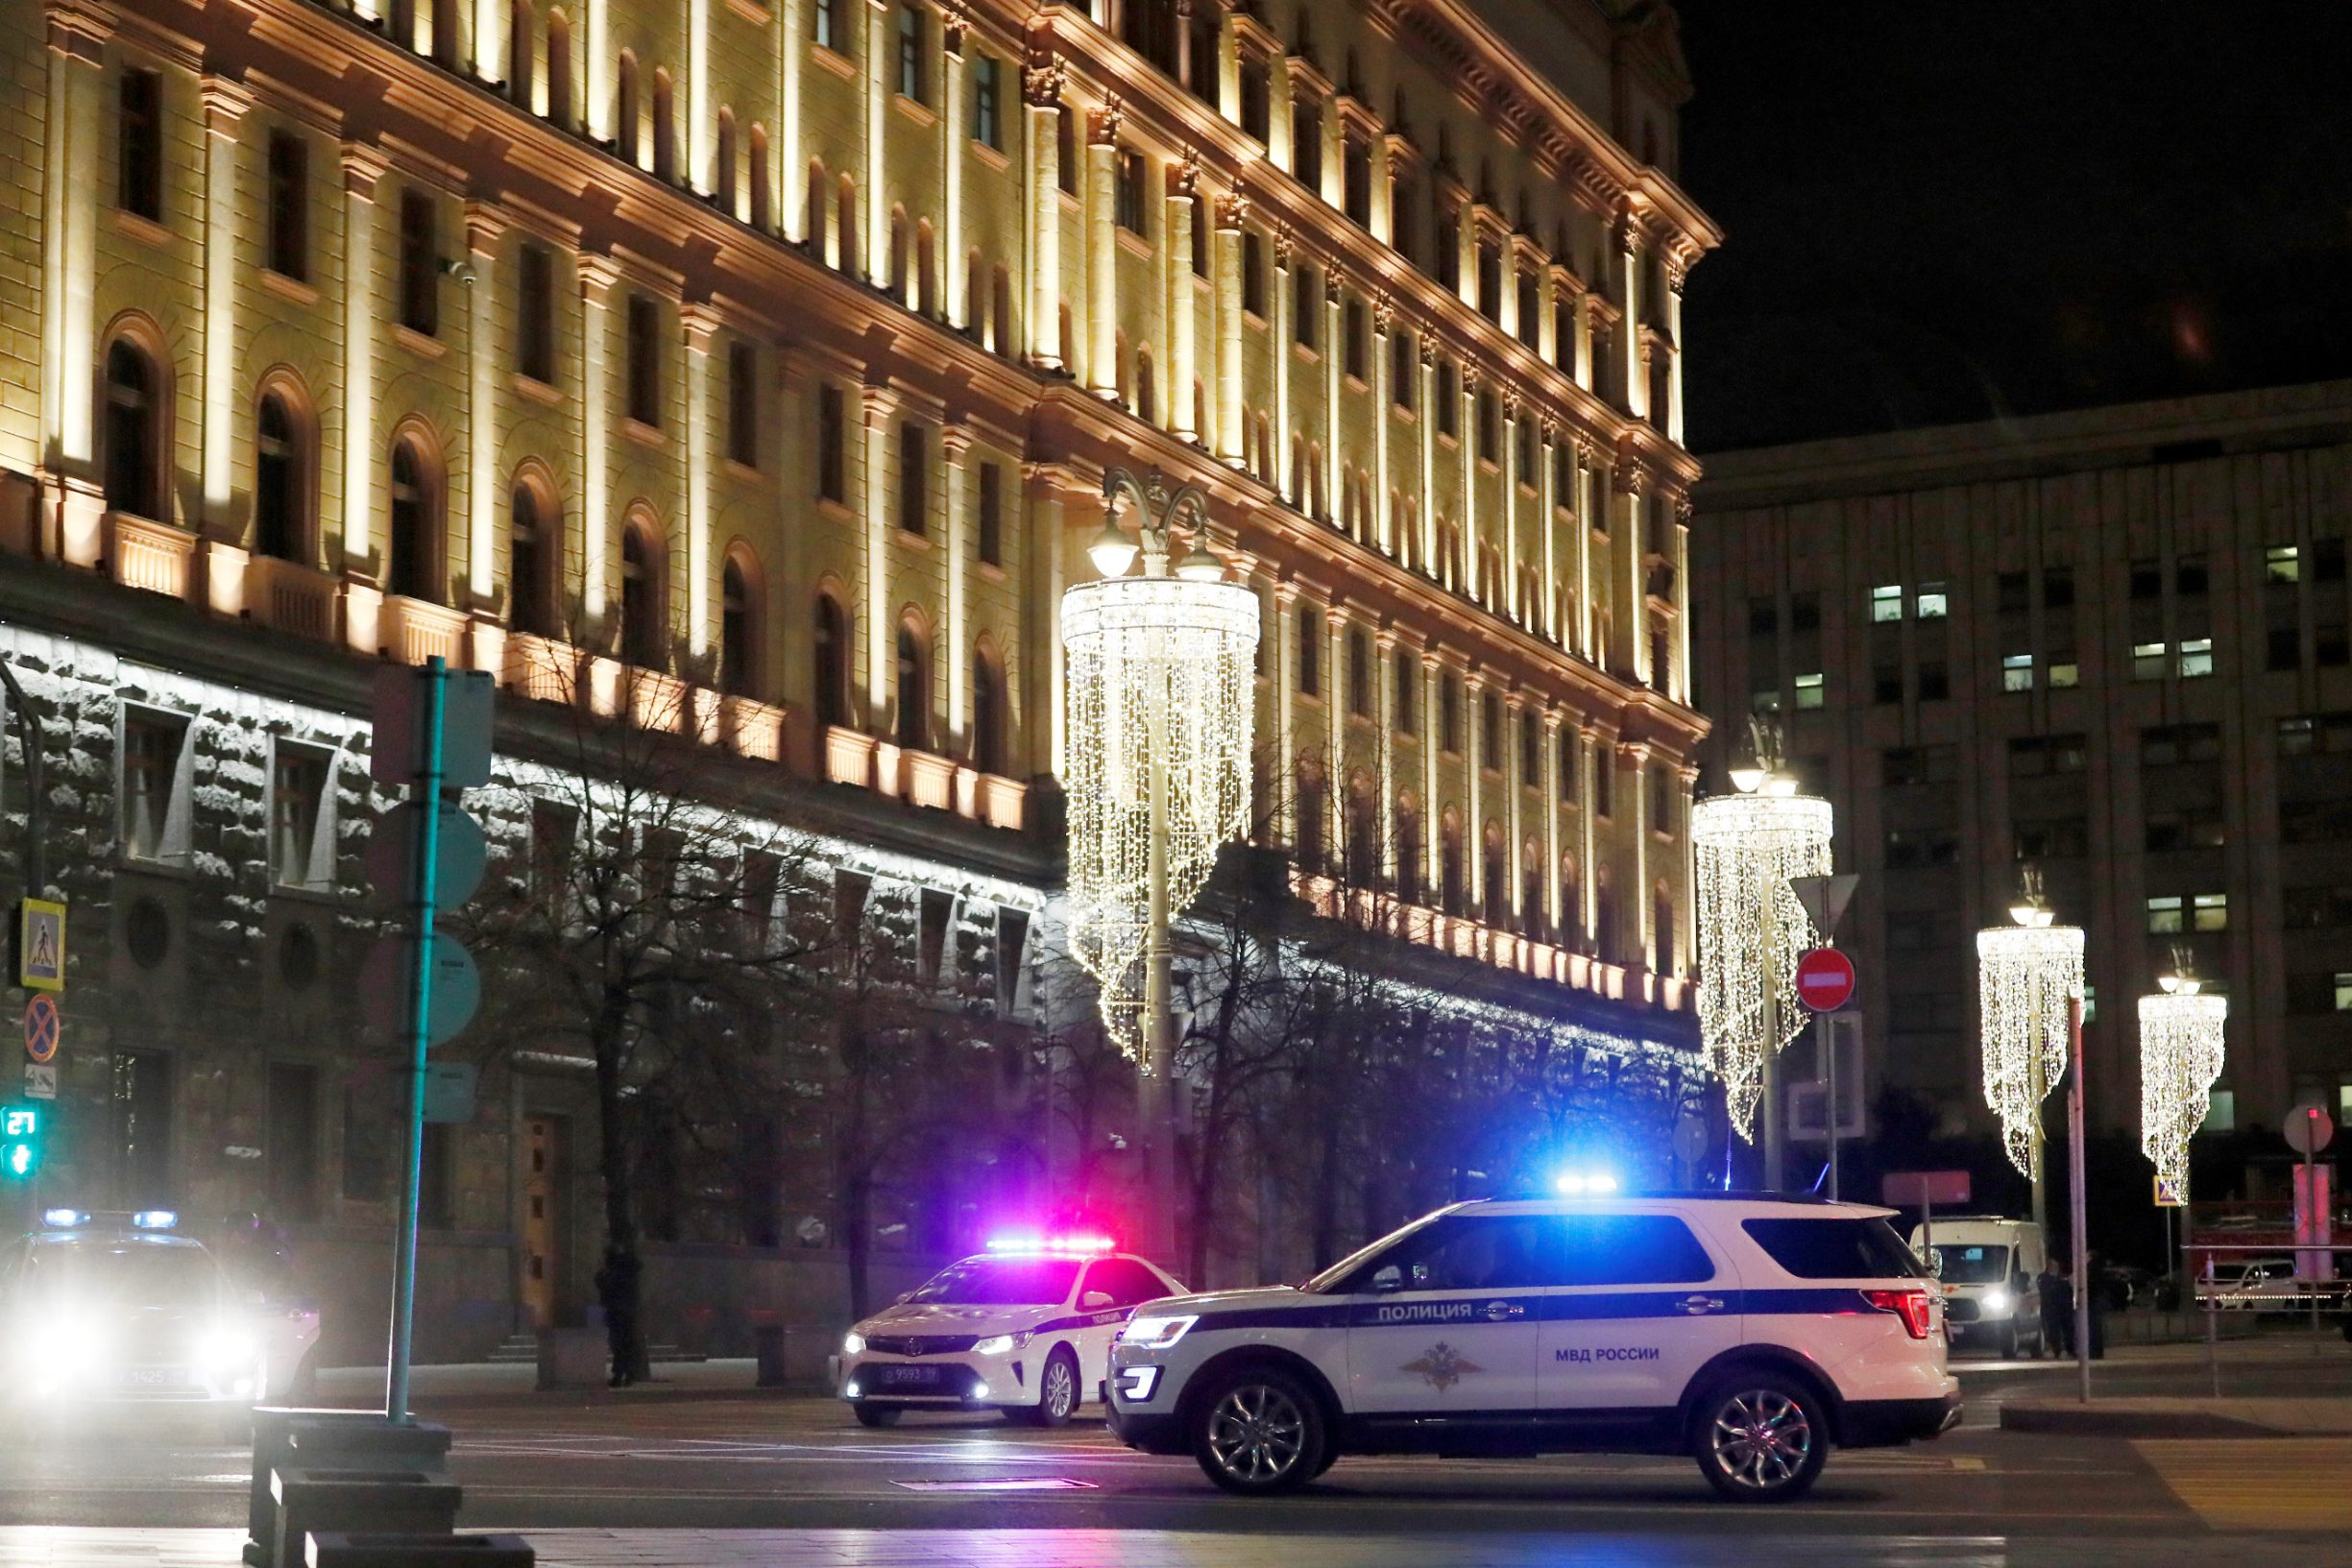 Police vehicles block a street near the Federal Security Service (FSB) building after a shooting incident, in Moscow, Russia December 19, 2019. REUTERS/Shamil Zhumatov